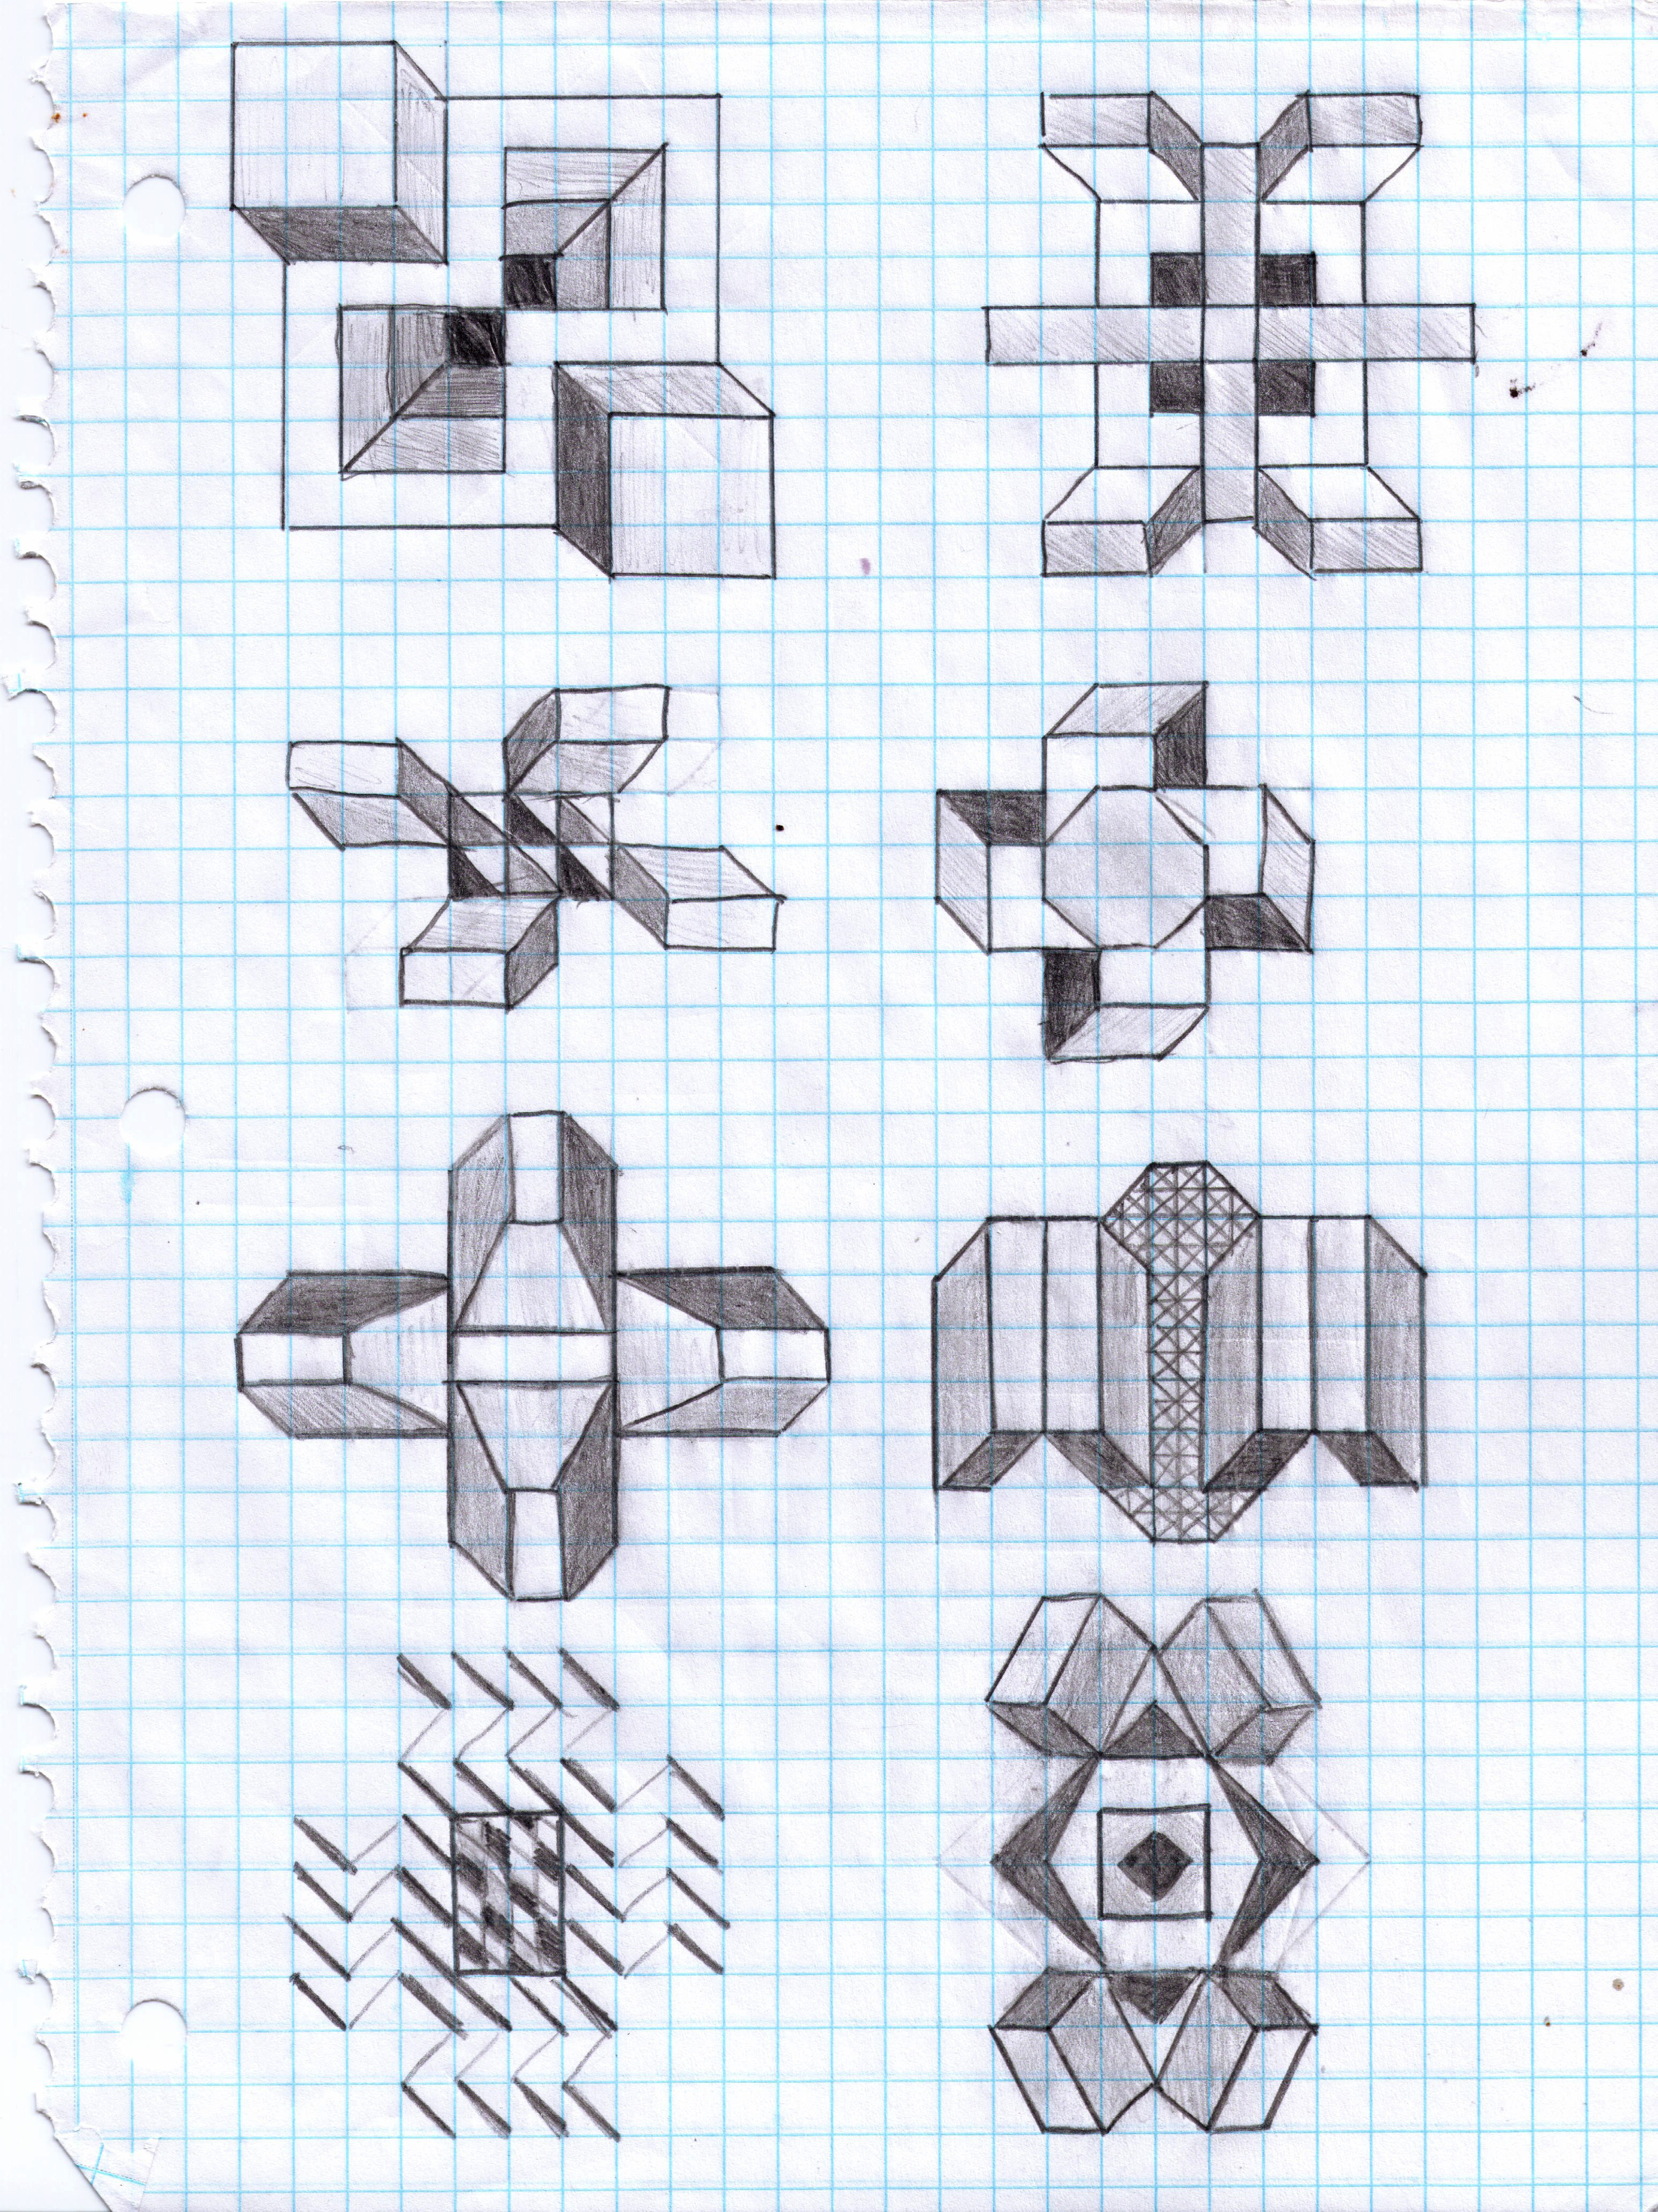 17 Graph Paper Art Designs Images Cool Graph Paper Art Designs Graph Paper Art Patterns And Cool Things To Draw On Graph Paper Newdesignfile Com